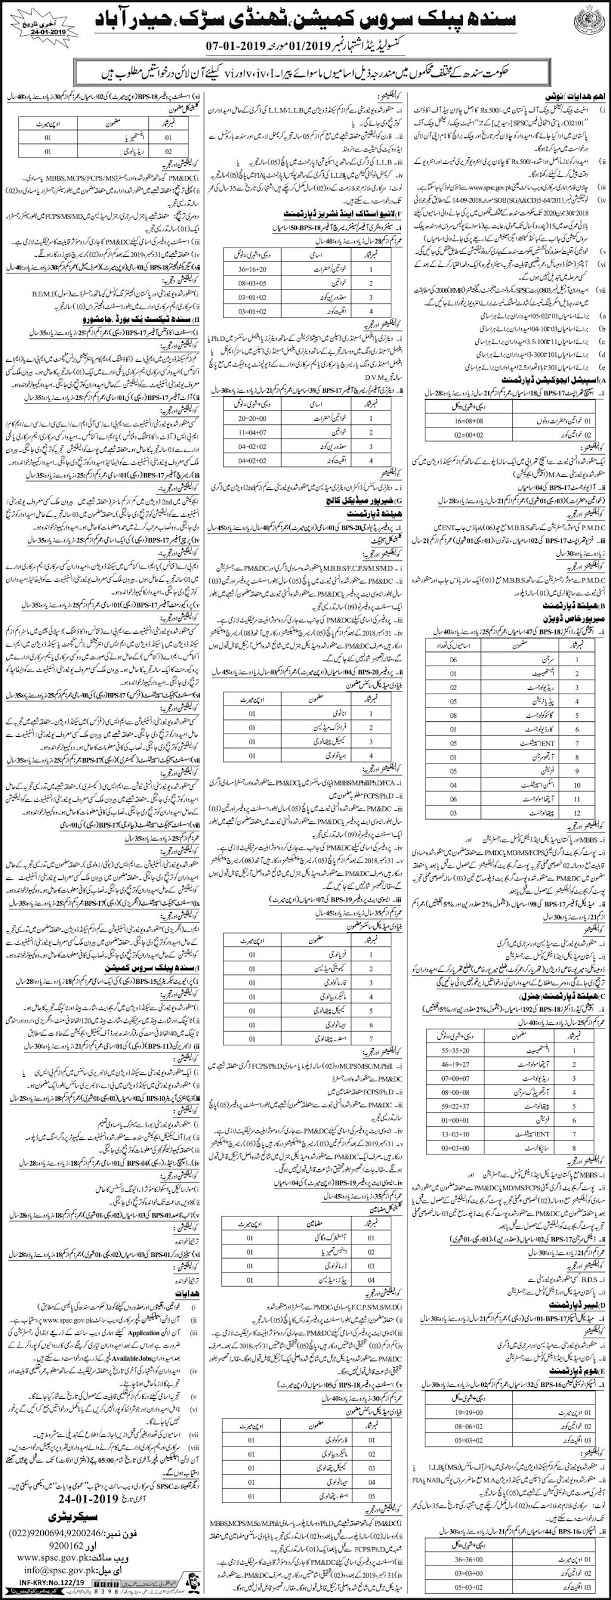 Jobs vacancies In Sindh Public Service Commission SPSC 10 January 2019